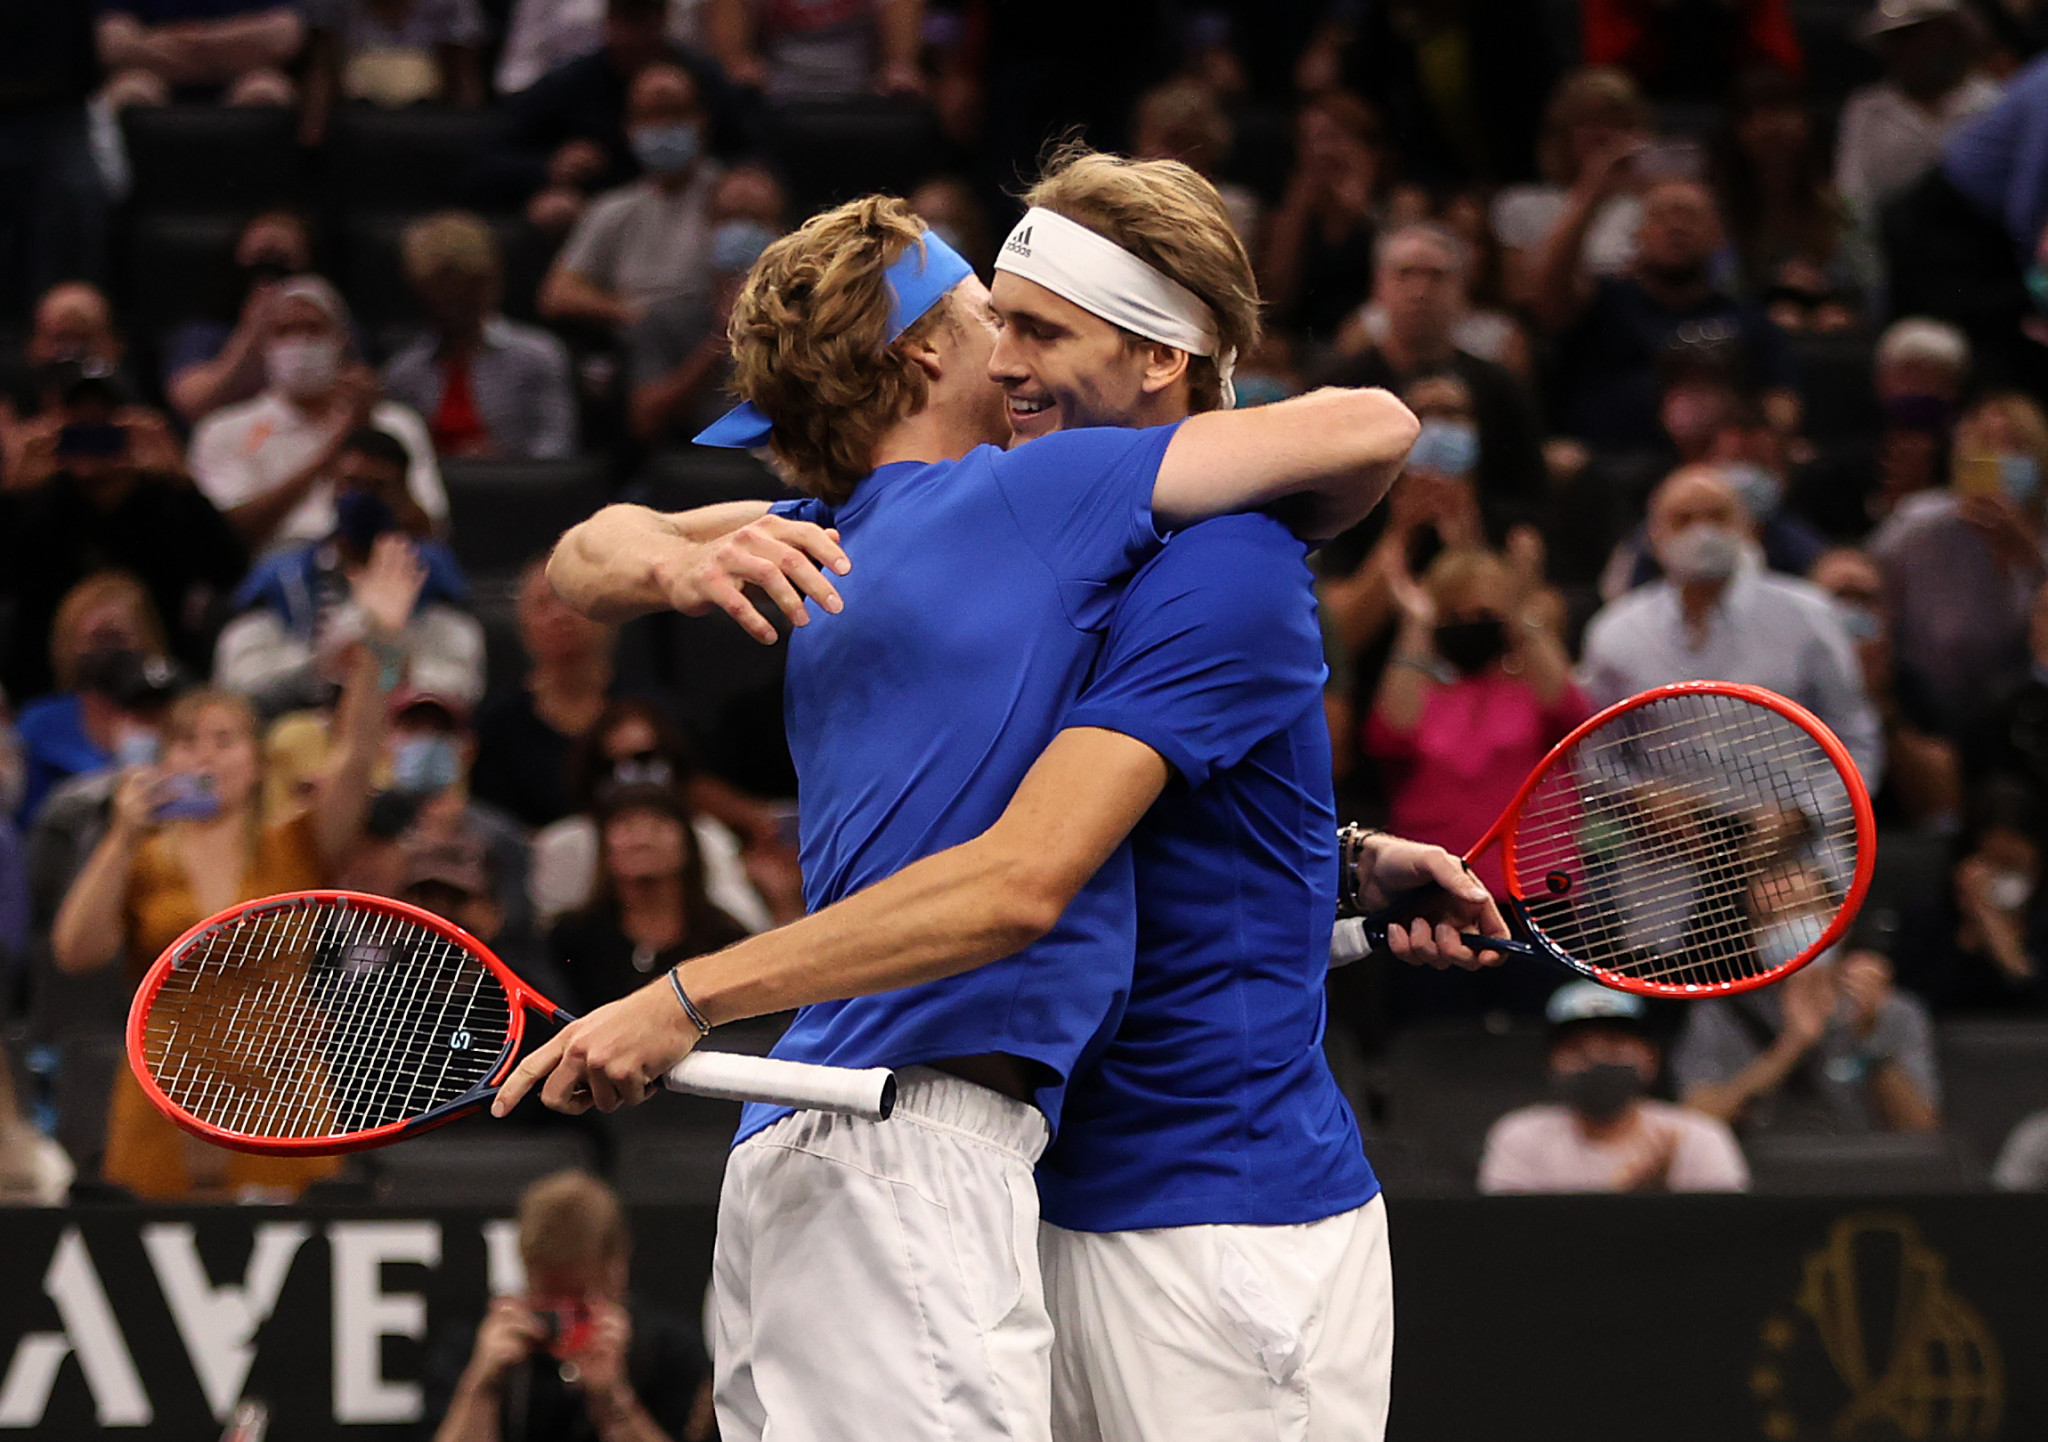 Russia's Andrey Rublev and Germany's Alexander Zverev won the final men's doubles match to seal victory ©Getty Images